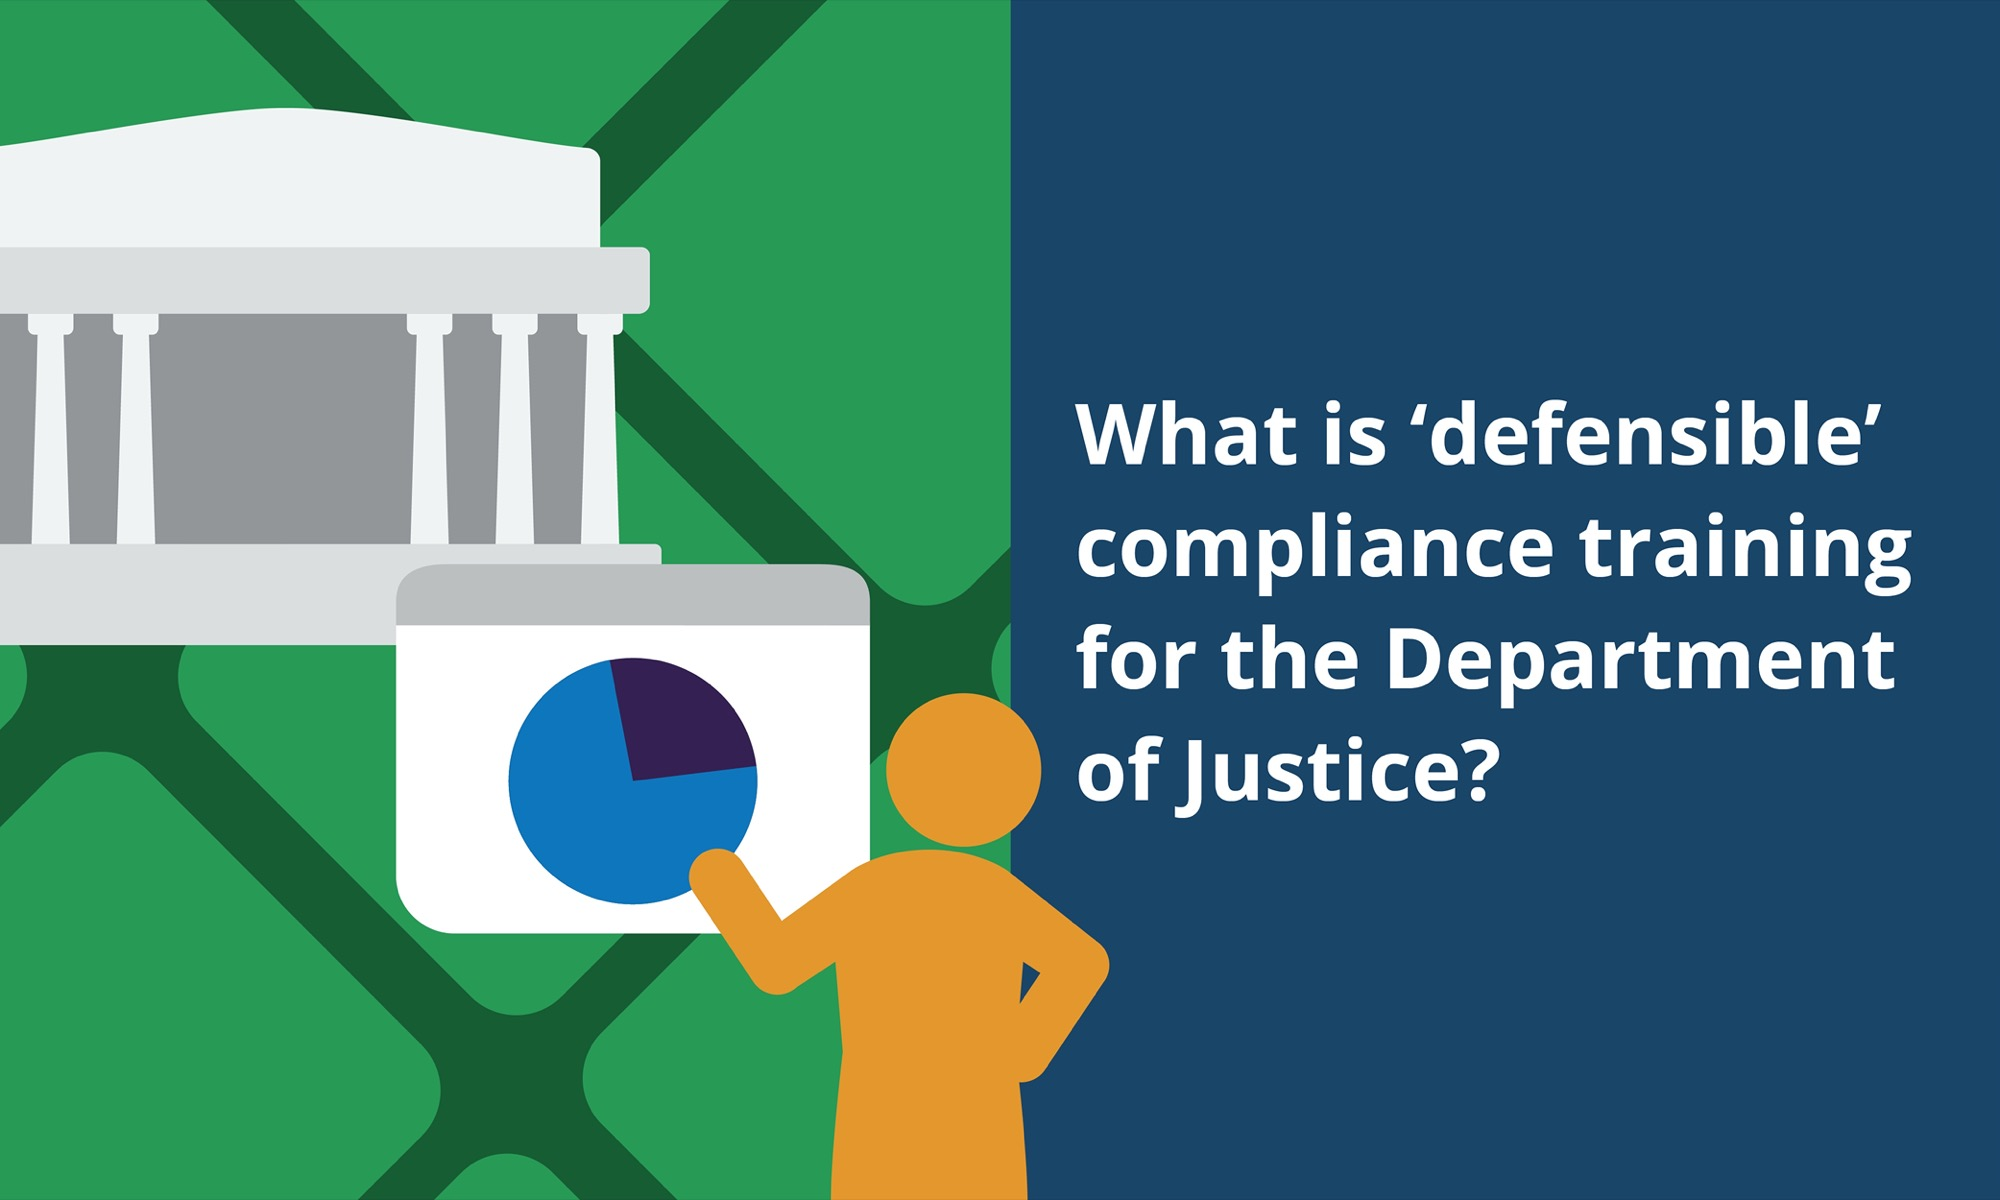 What is 'defensible' compliance training for the Department of Justice?